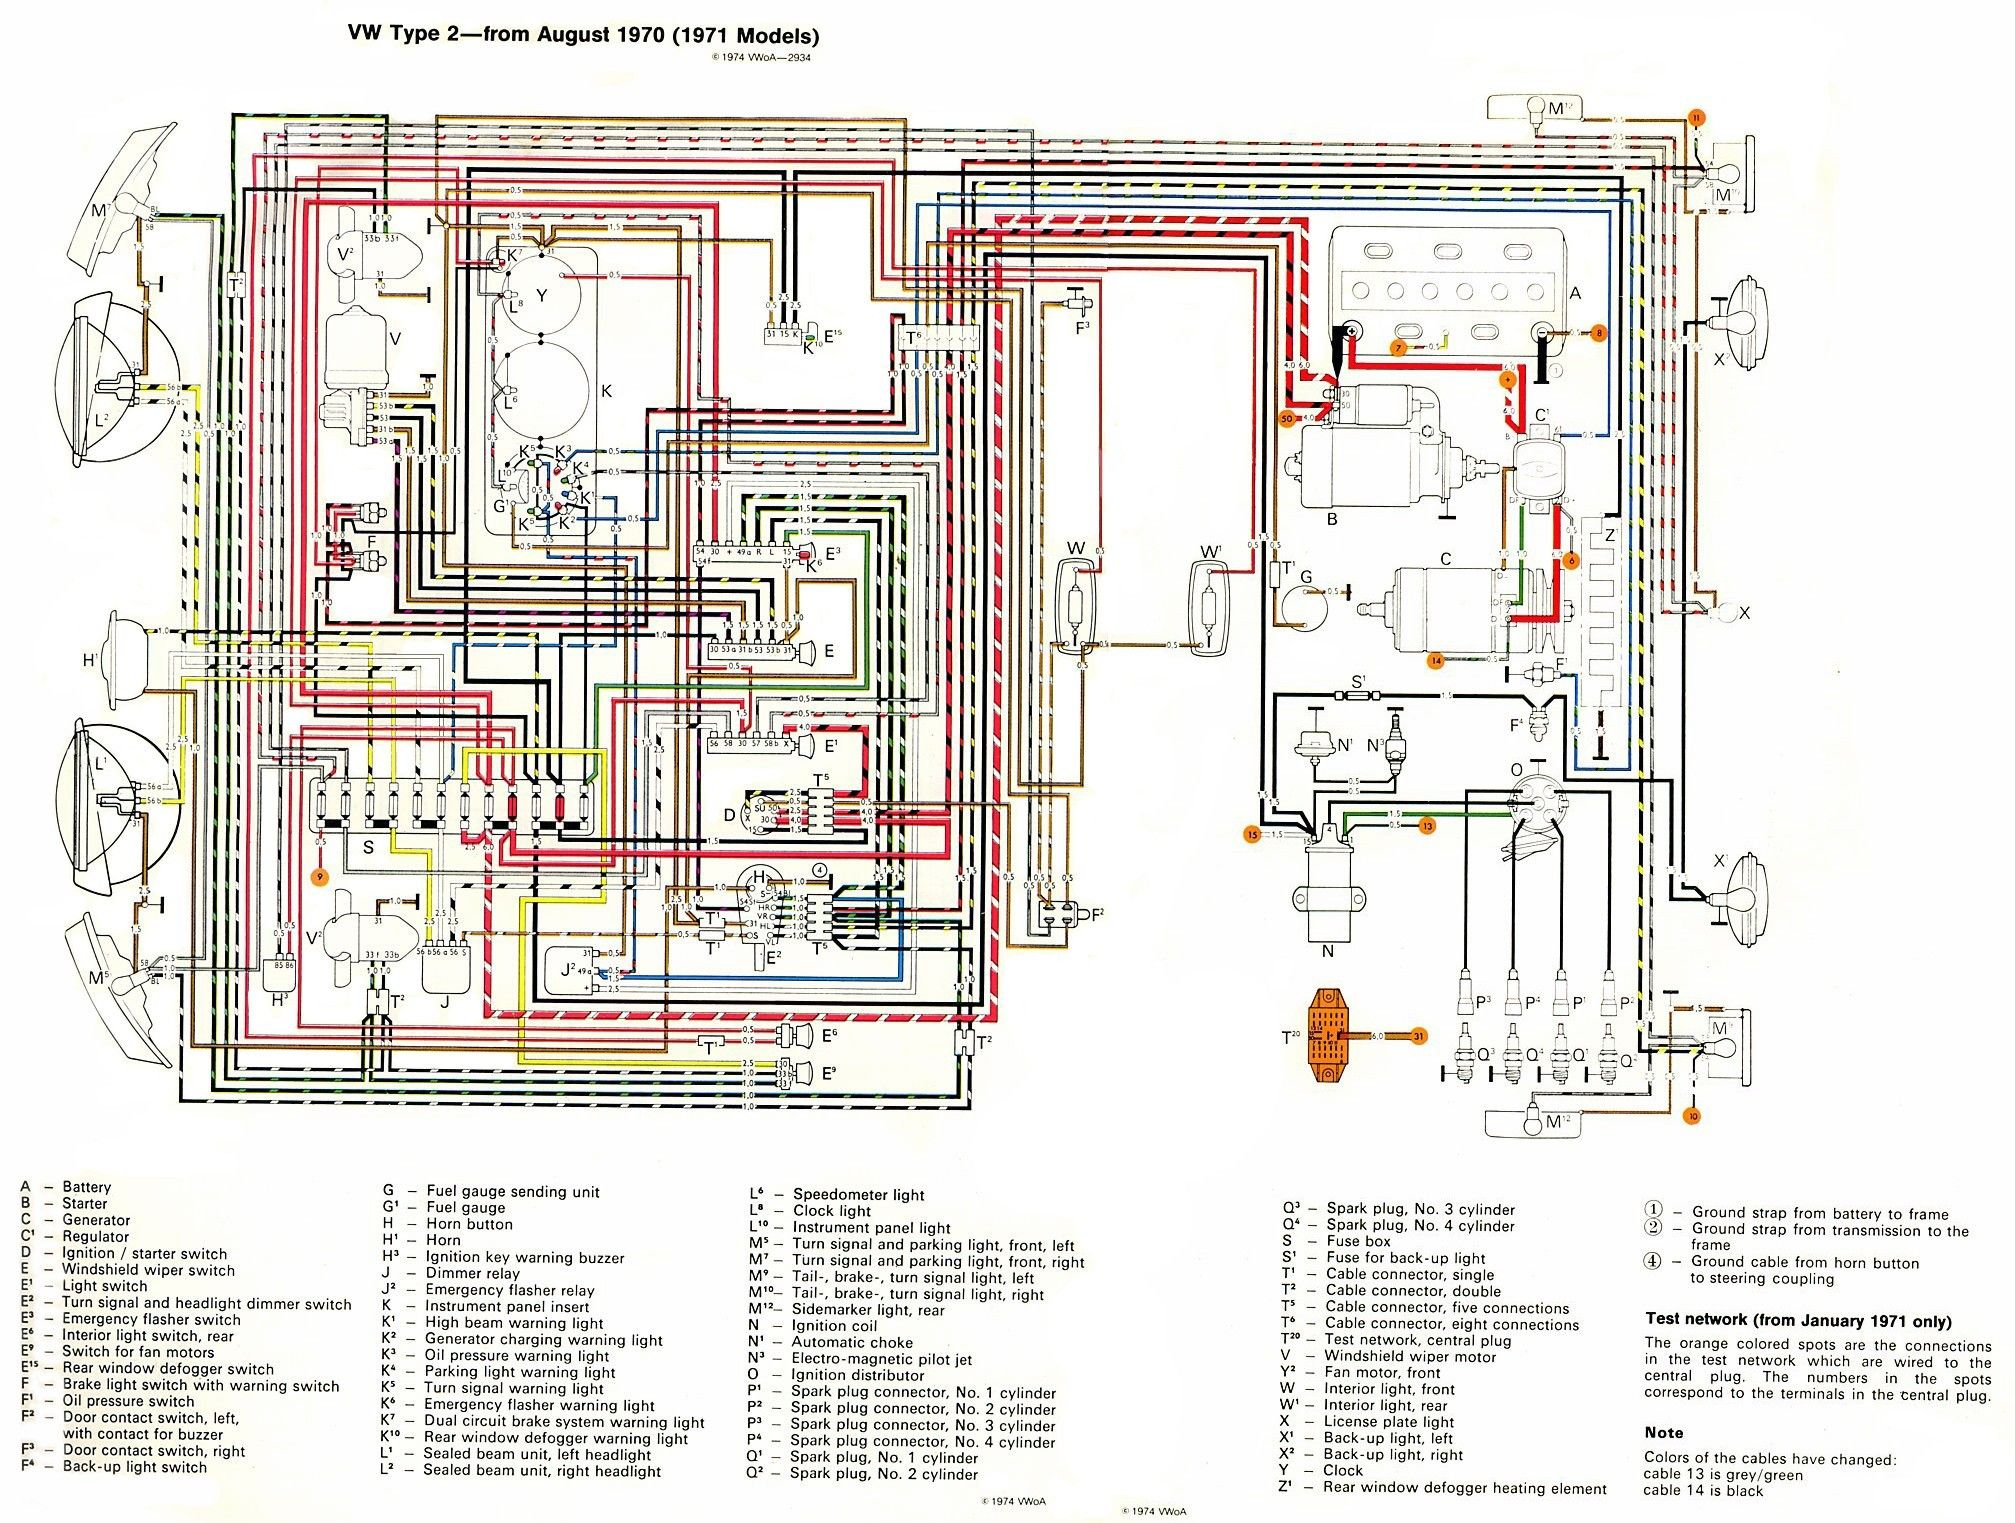 Unique Volkswagen Generator Wiring Diagram Diagram Diagramsample Diagramtemplate Wiringdiagram Diagramchart Worksheet Sistema Electrico Vw Vocho Vw Sedan